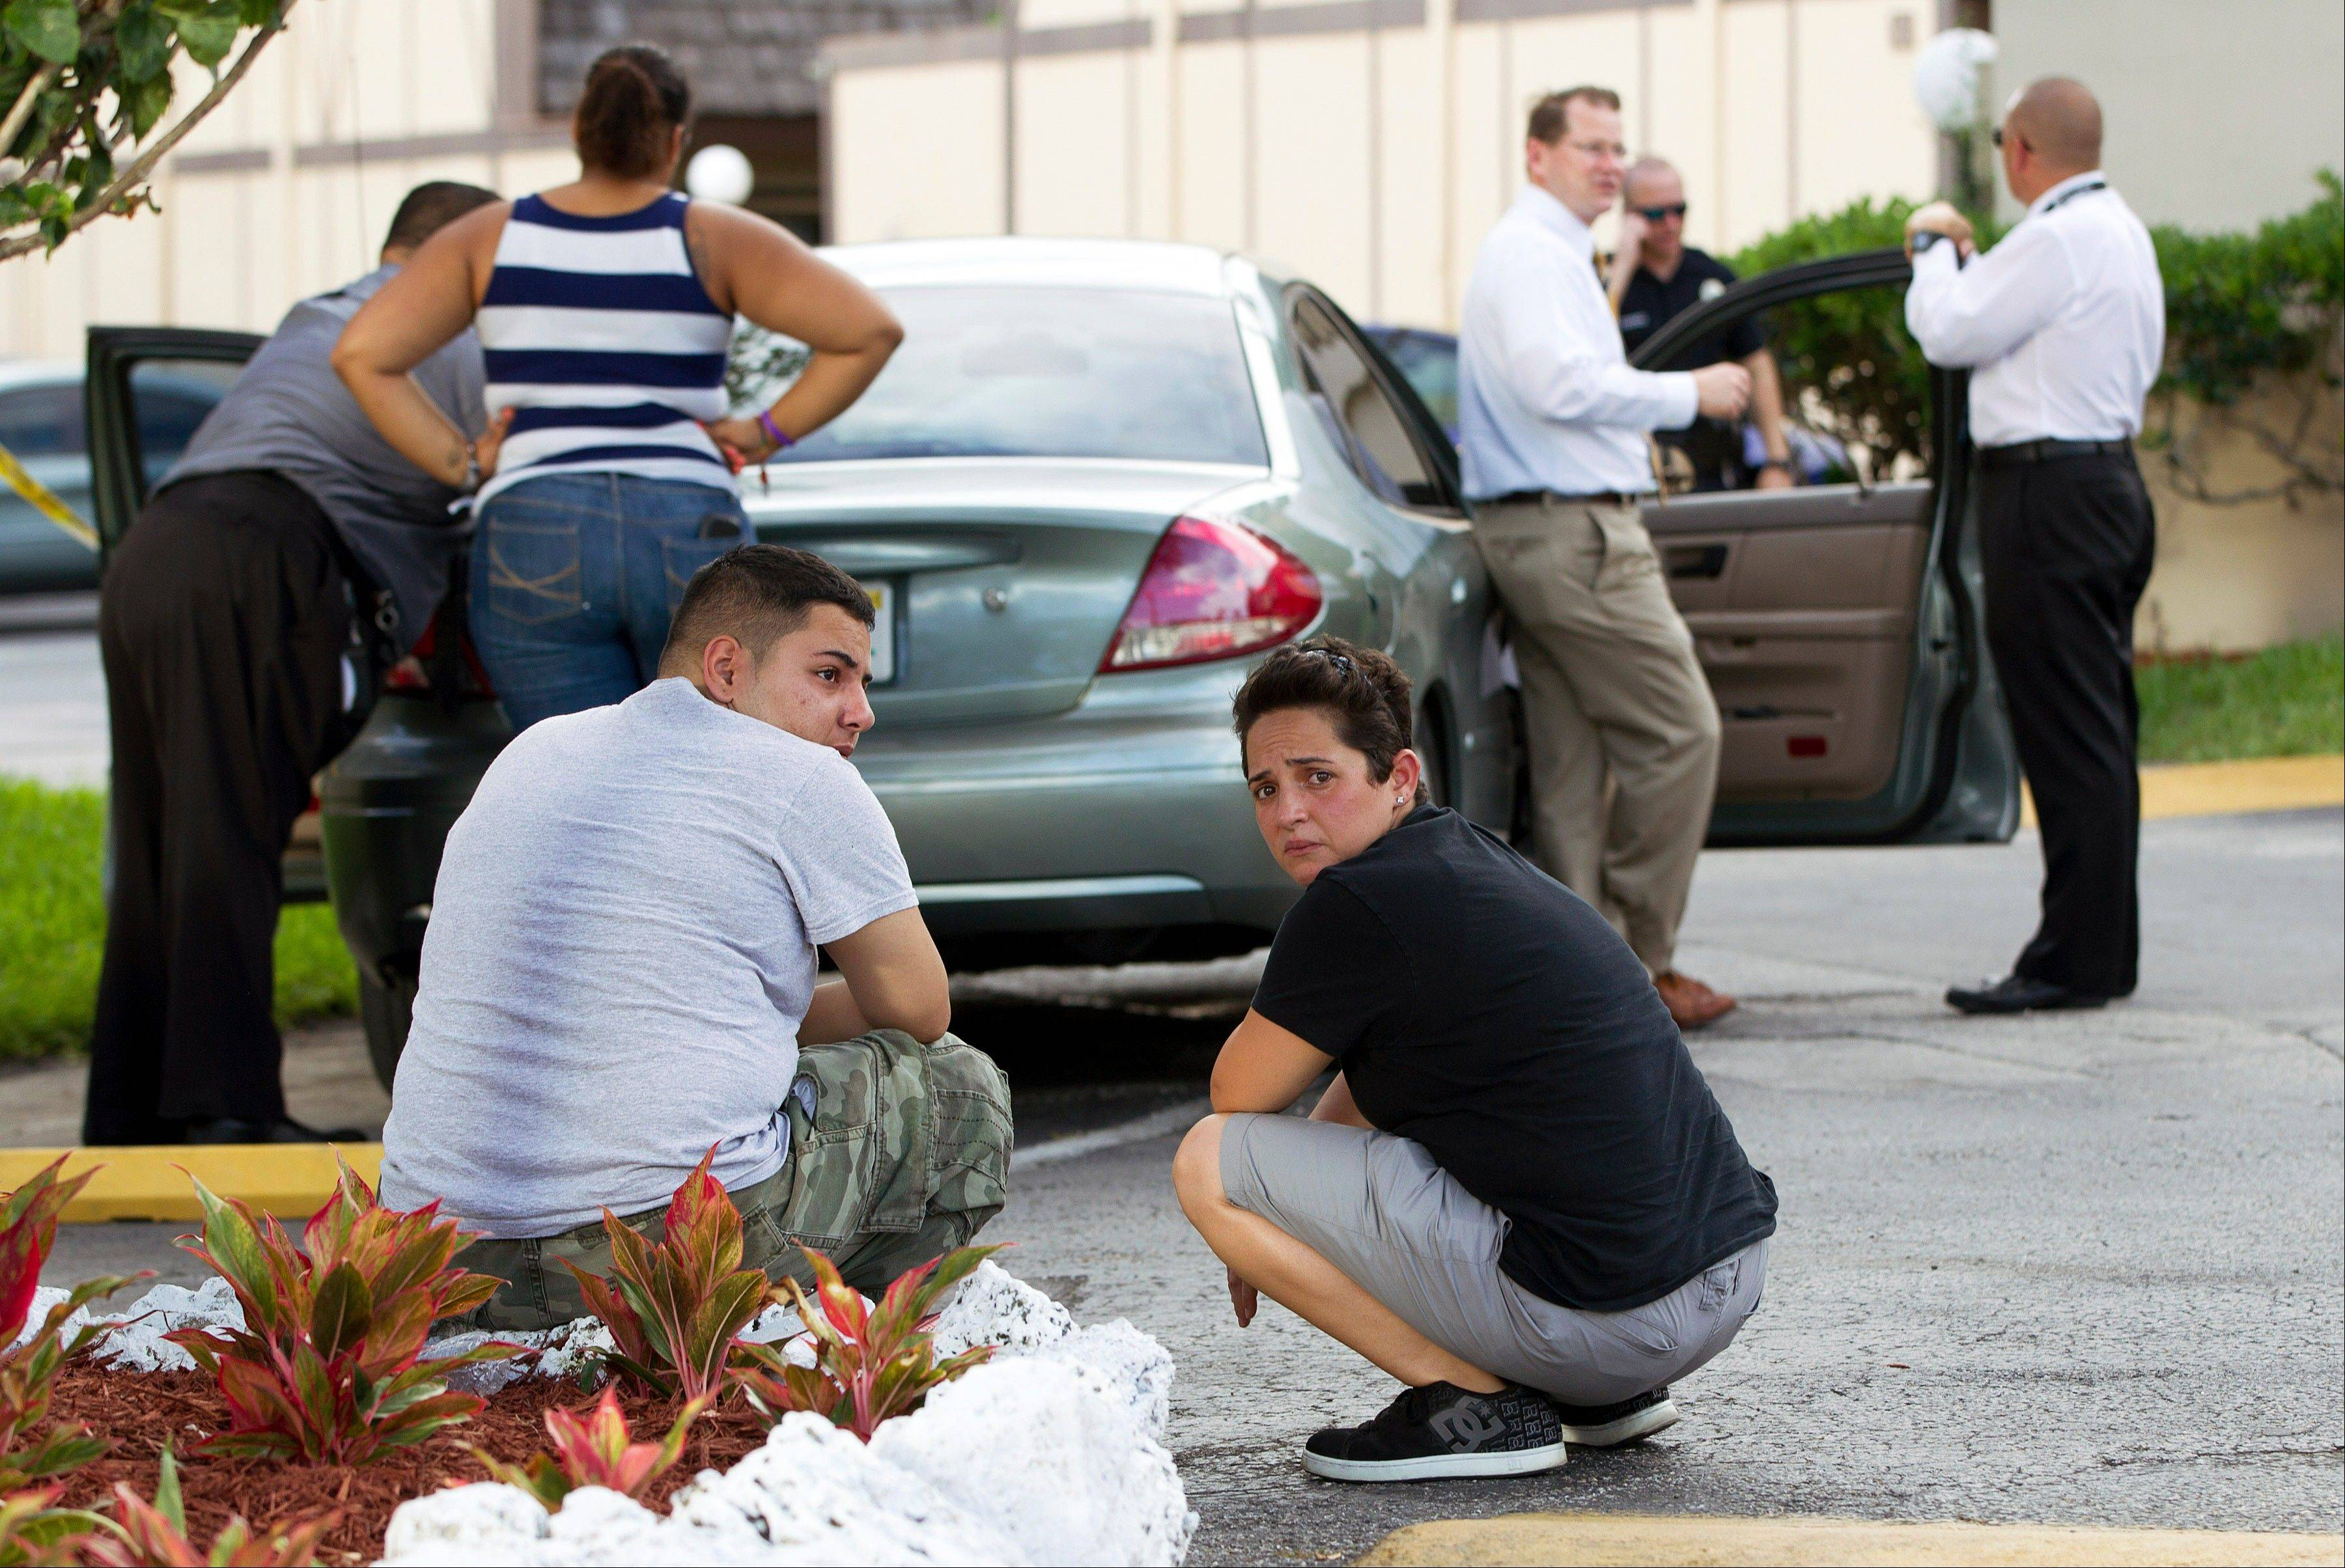 Two people sit behind a police car as Miami police officers investigate a murder on Thursday, Aug. 8, 2013 in Miami. Derek Medina, who authorities say fatally shot his wife ó and apparently then posted a photo of her body on Facebook ó turned himself in to police on Thursday. (AP Photo/J Pat Carter)